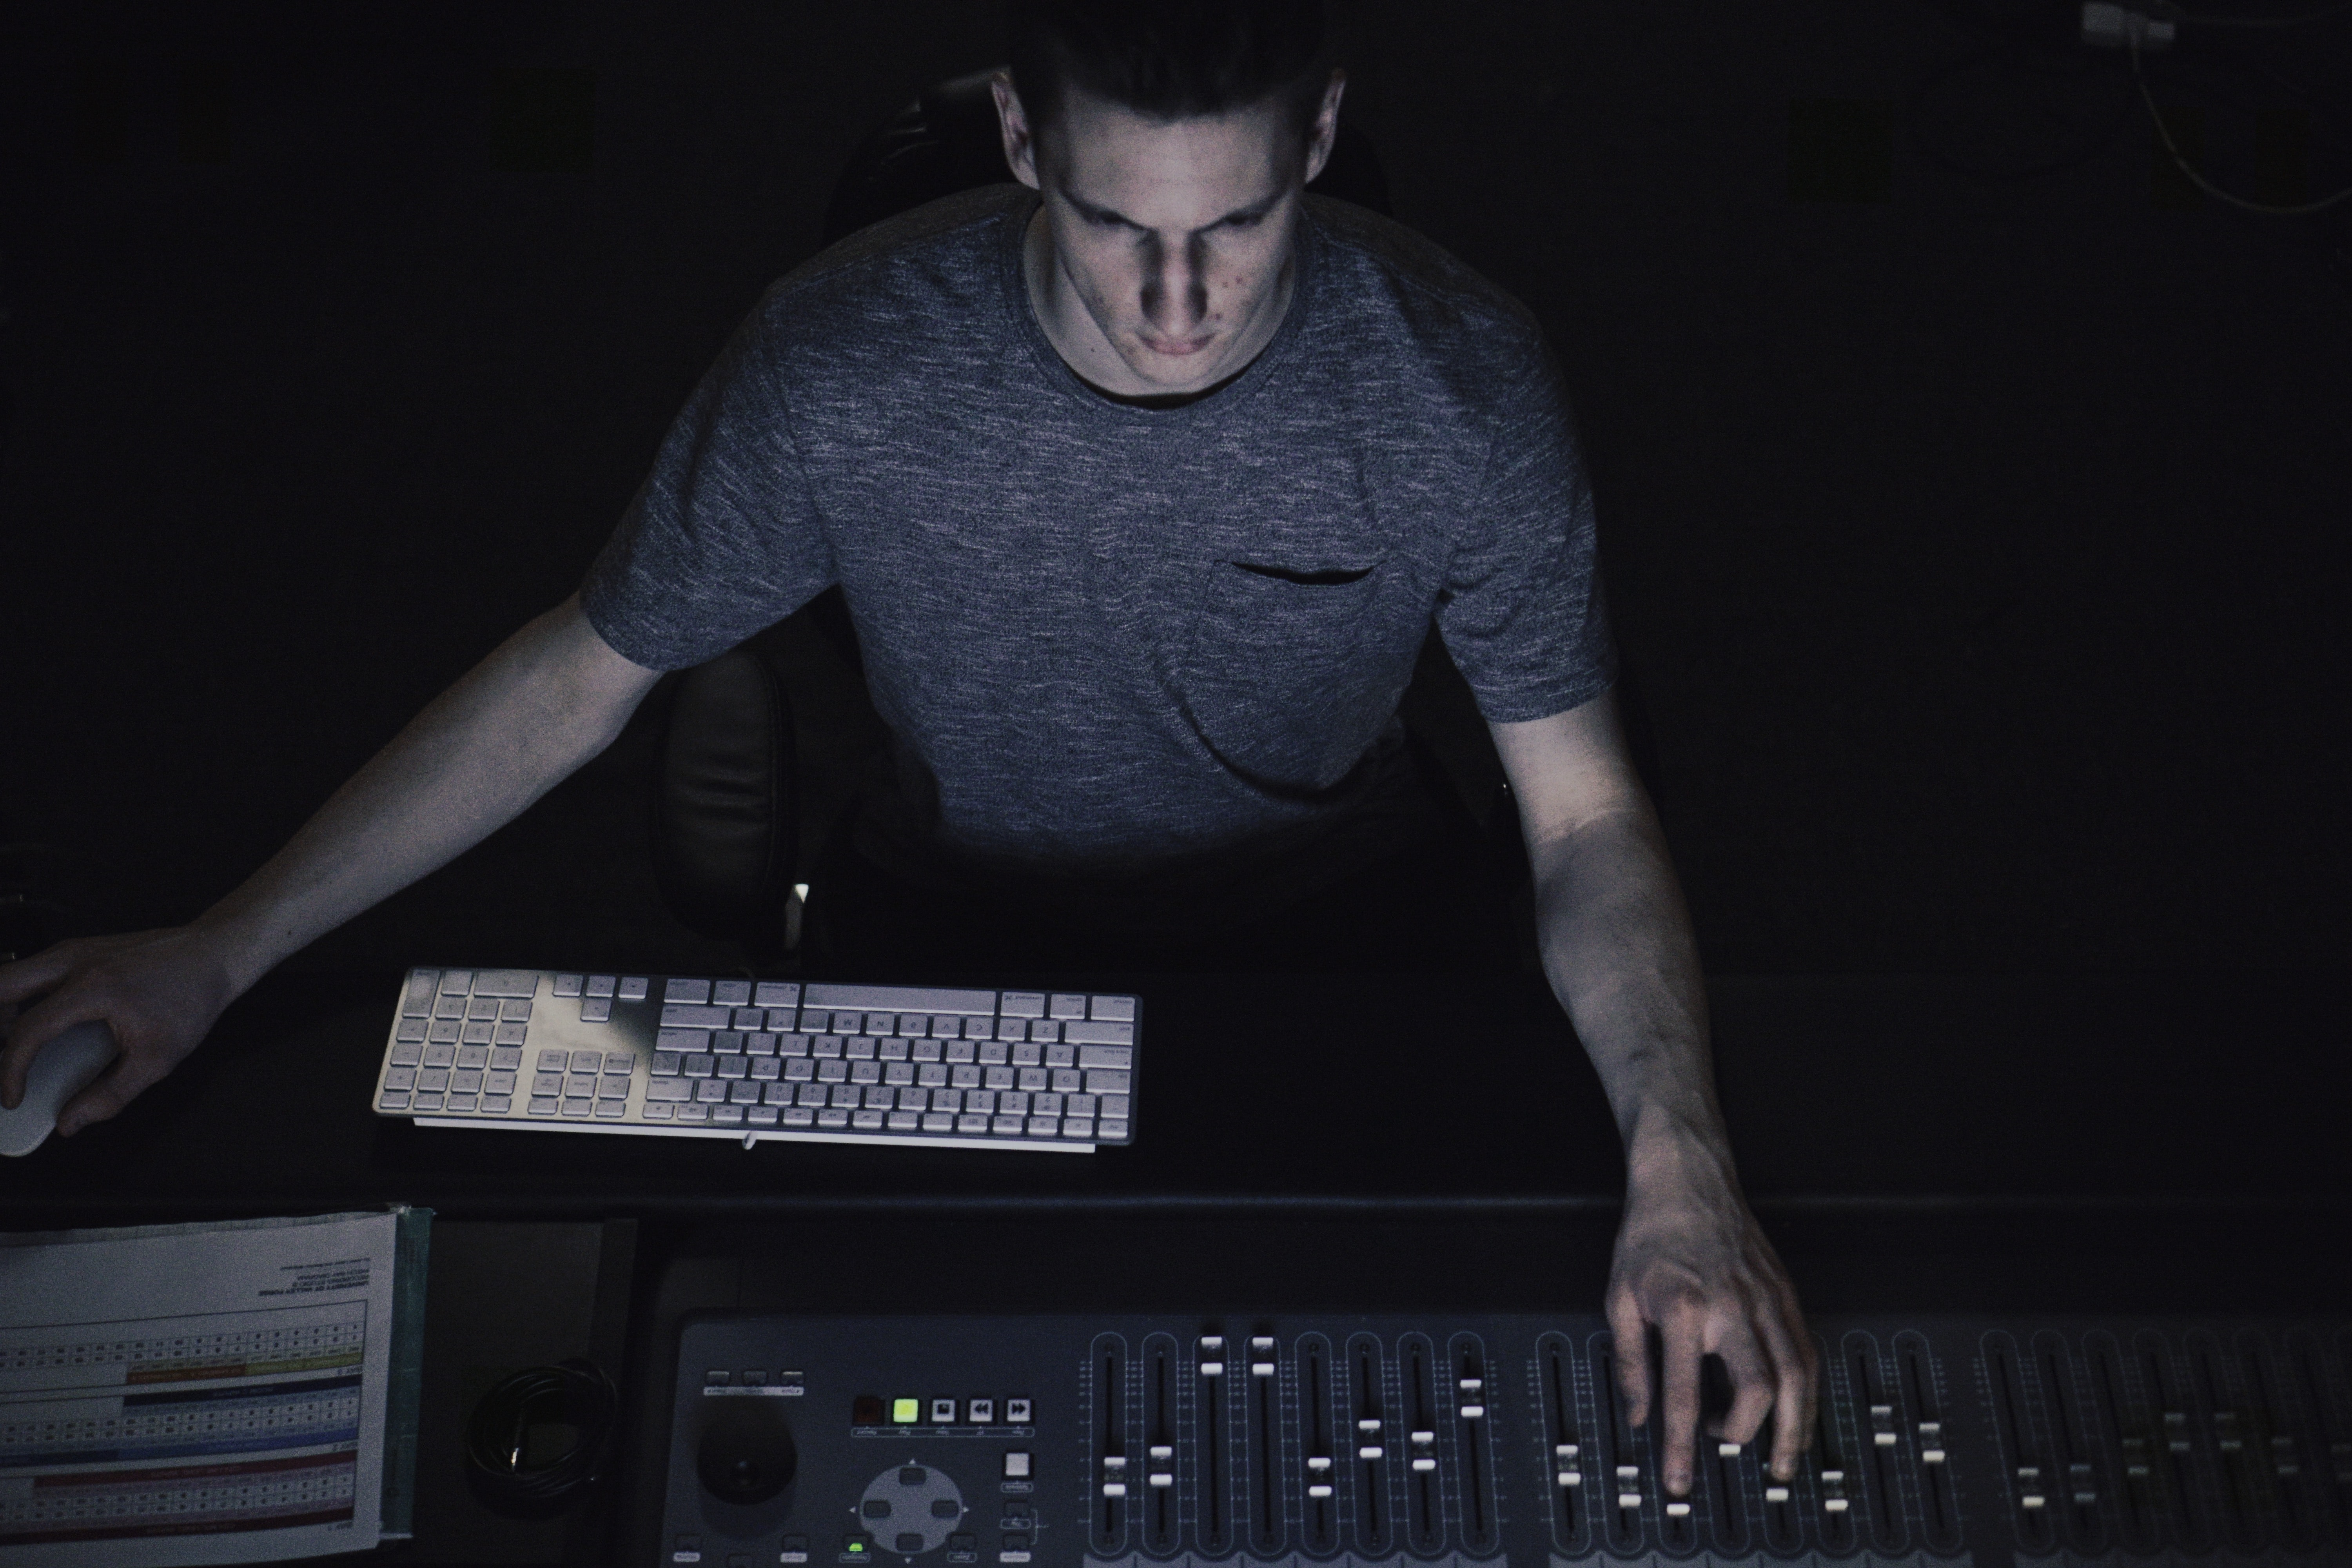 man in gray shirt using sound equalizer